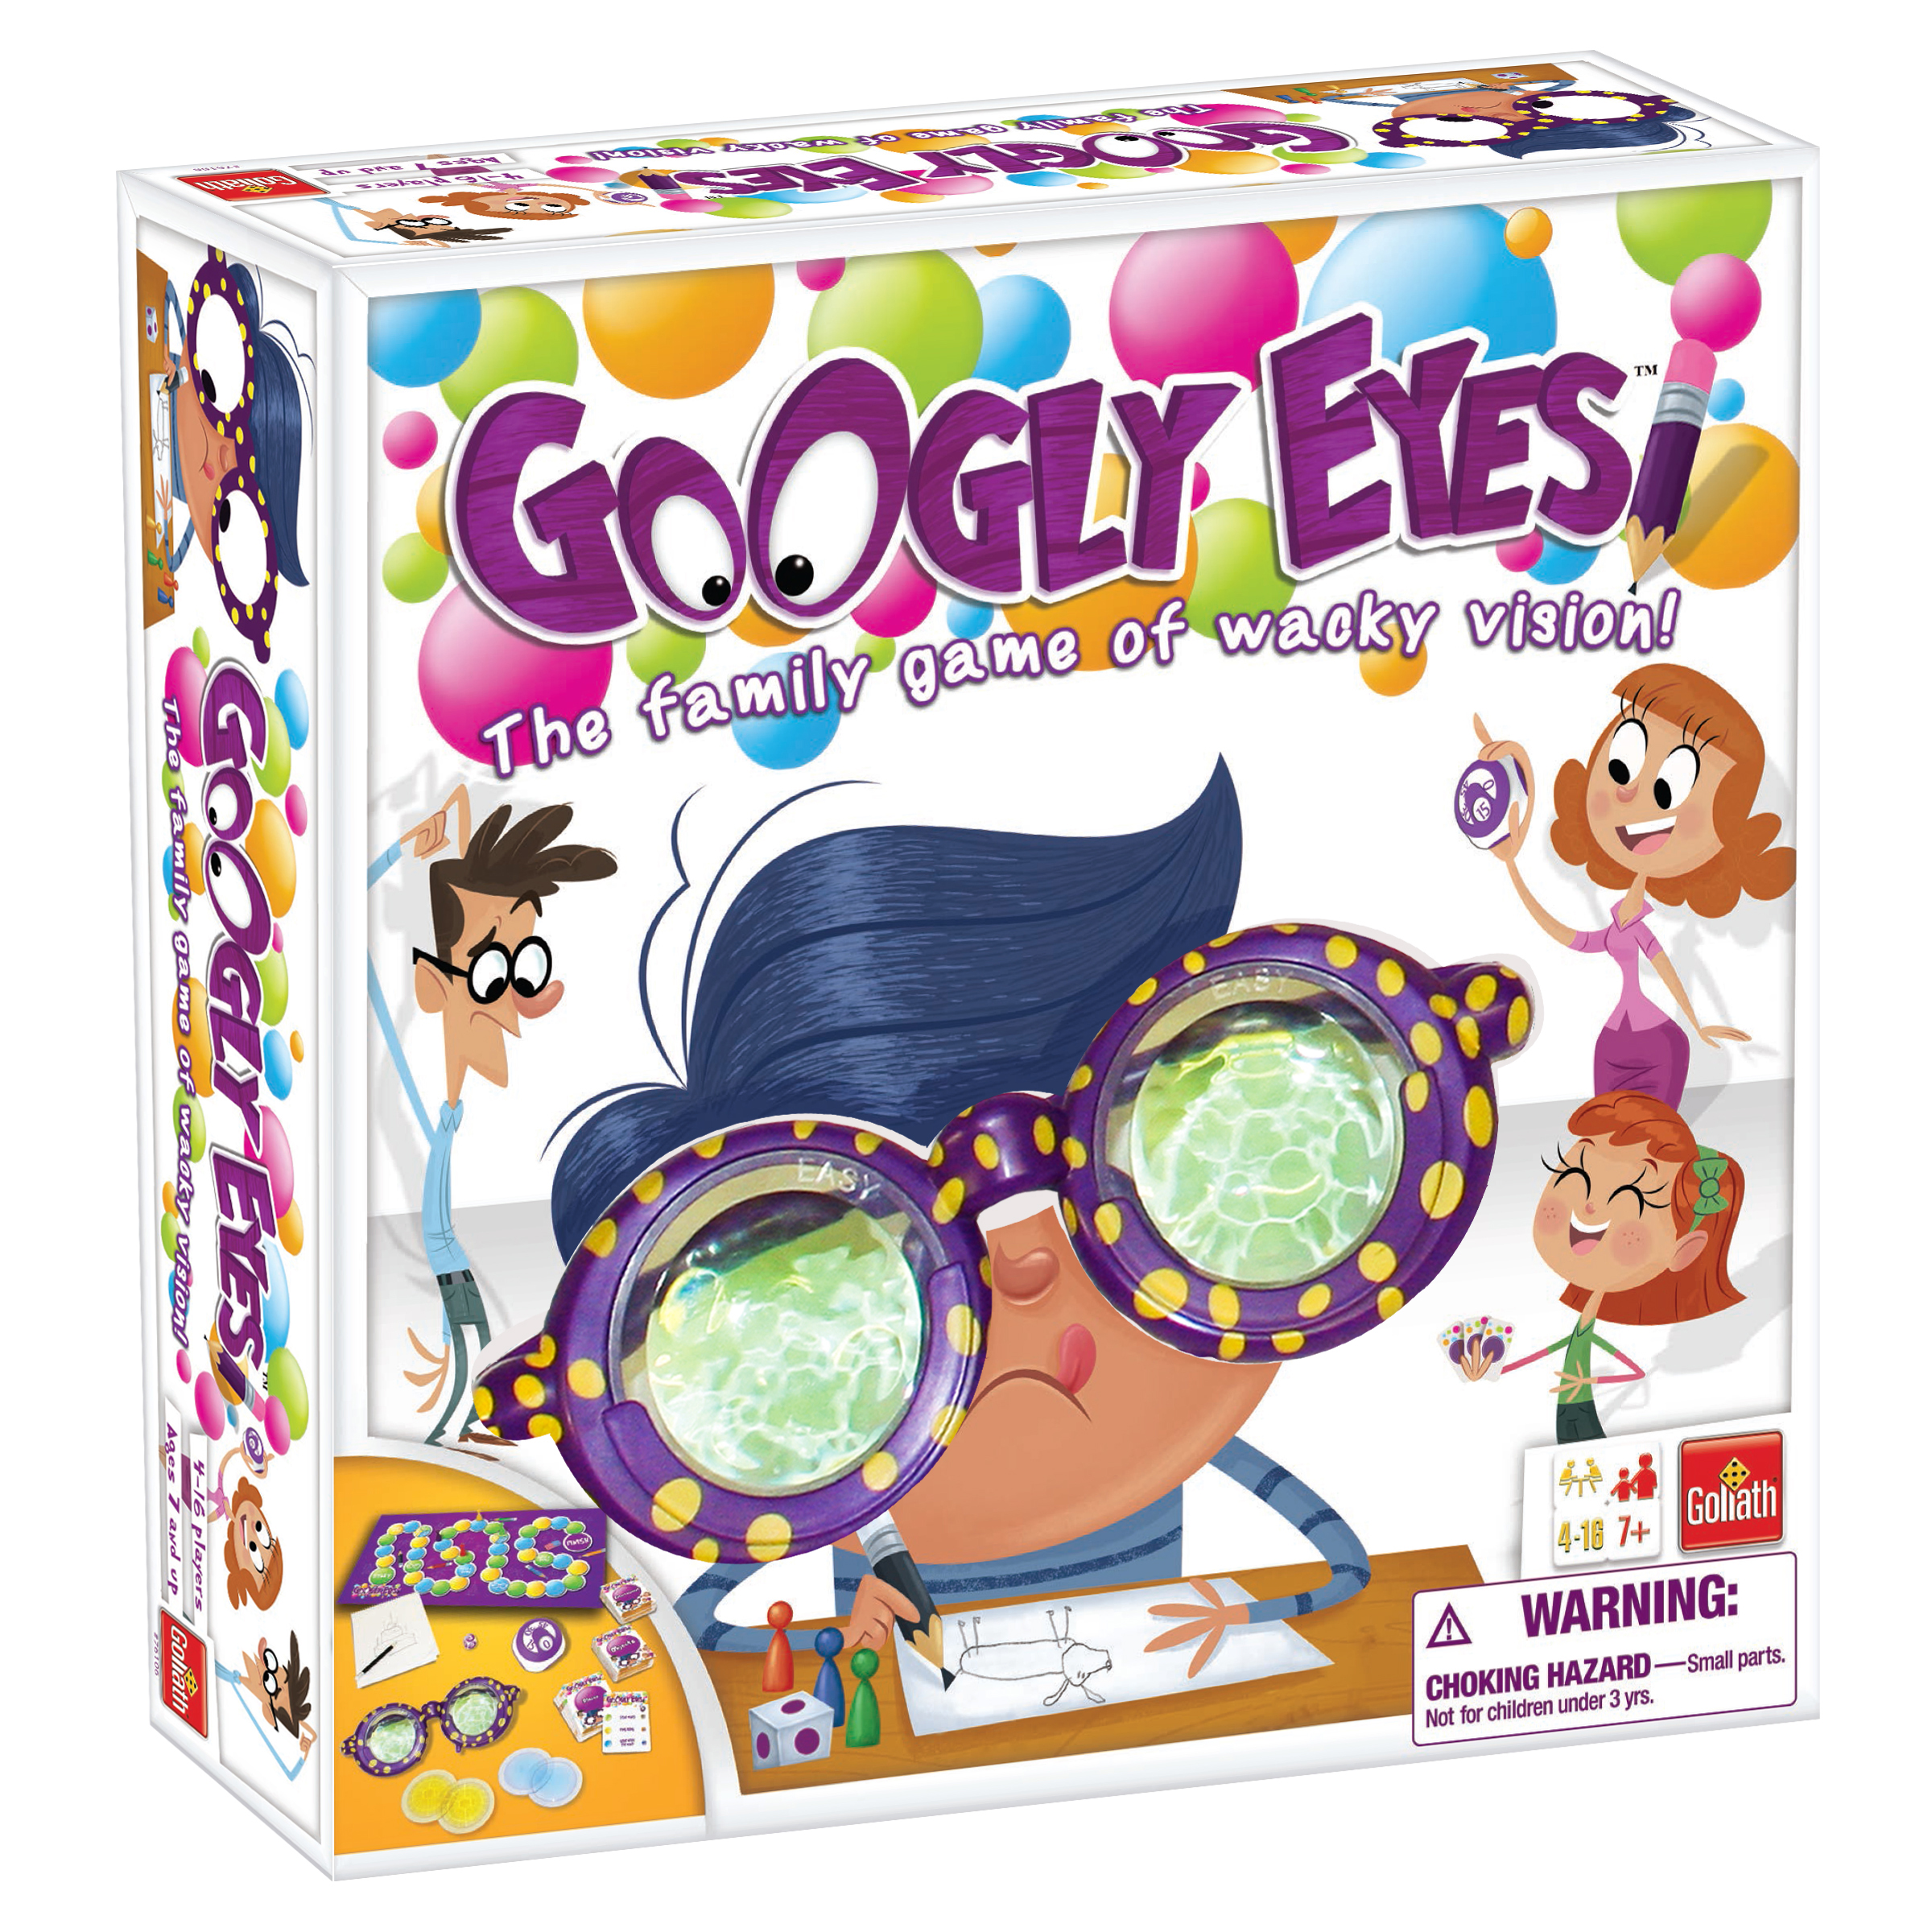 Googly Eyes - Family Drawing Game with Vision-Altering Glasses